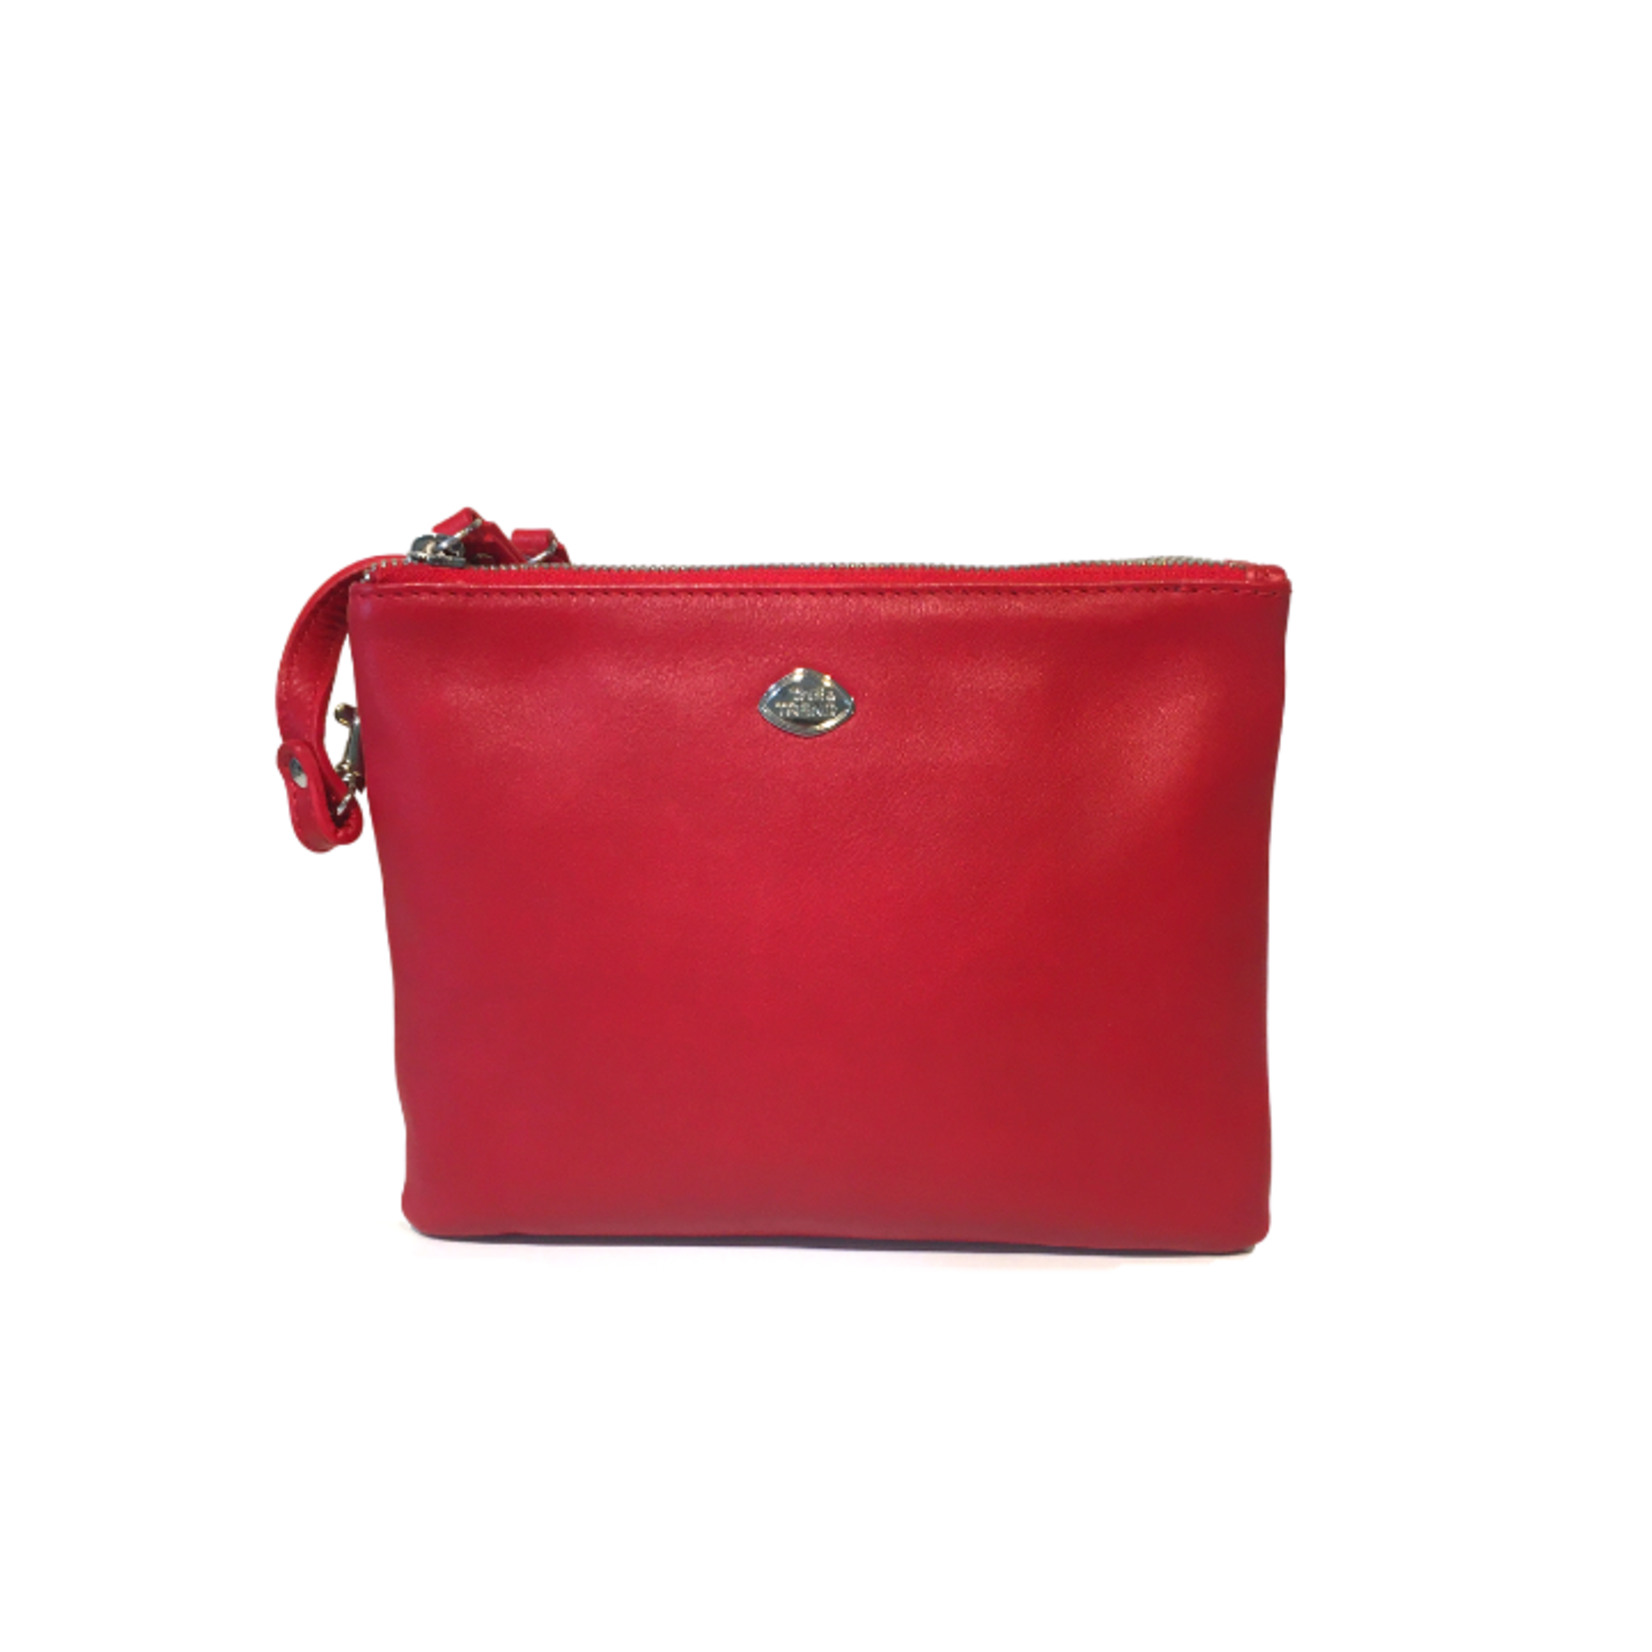 The Trend 585551 red